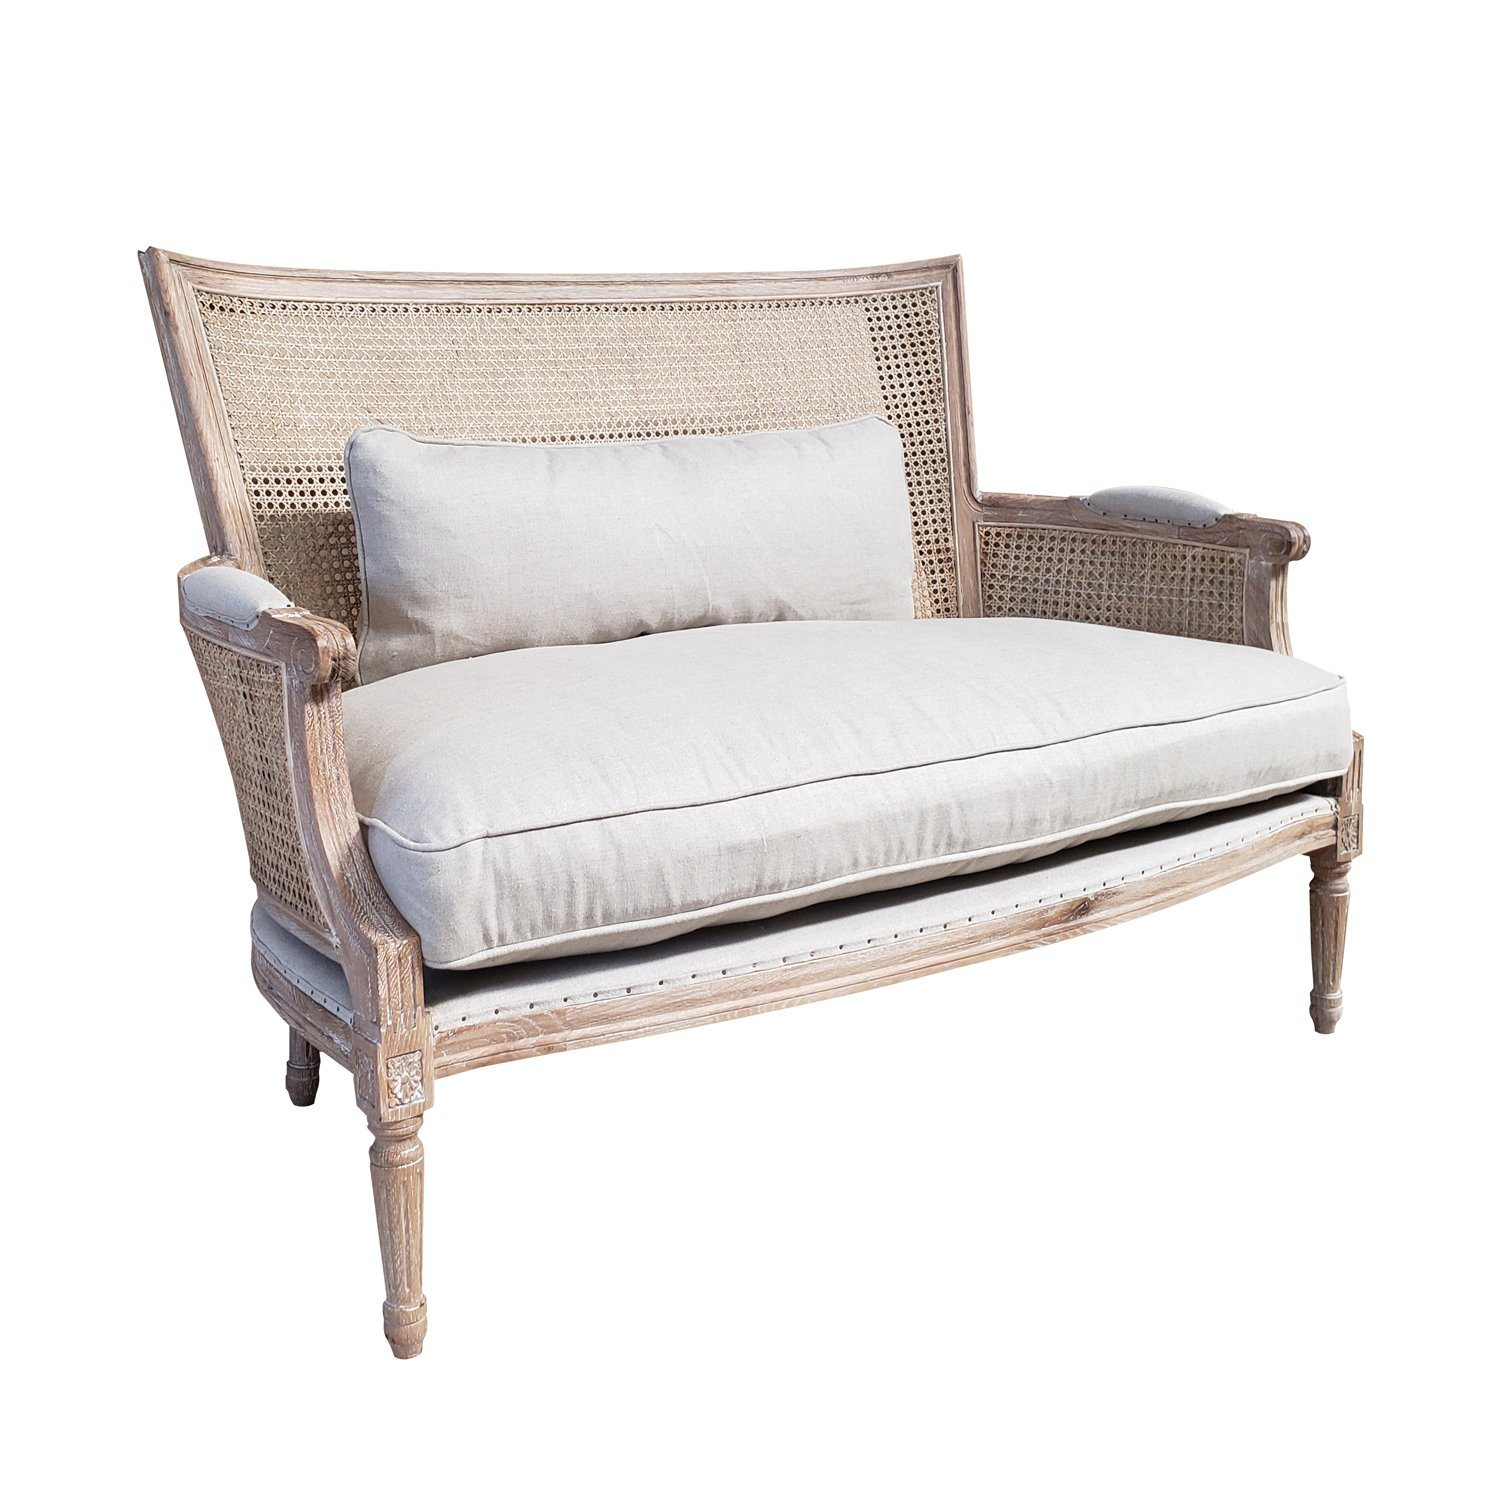 China French Style Oak Wooden Rattan Furniture Cane Sofa China Rattan Sofa Rattan Furniture Sofa